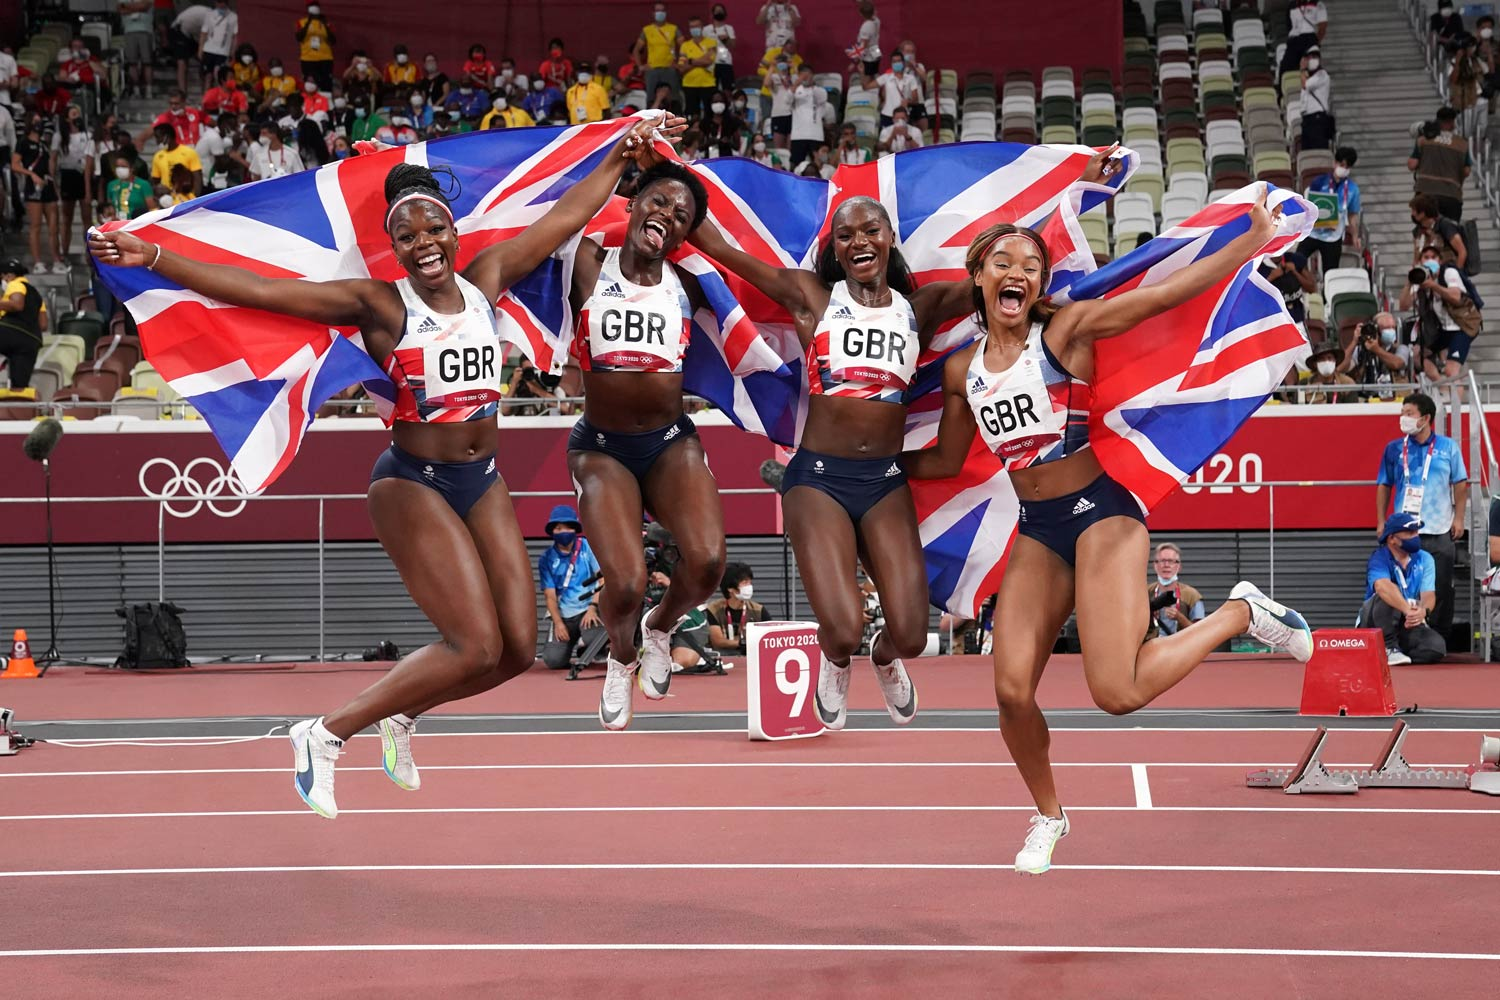 Breaking the national record with an impressive 41.55 seconds and securing a bronze medal for Team Great Britain